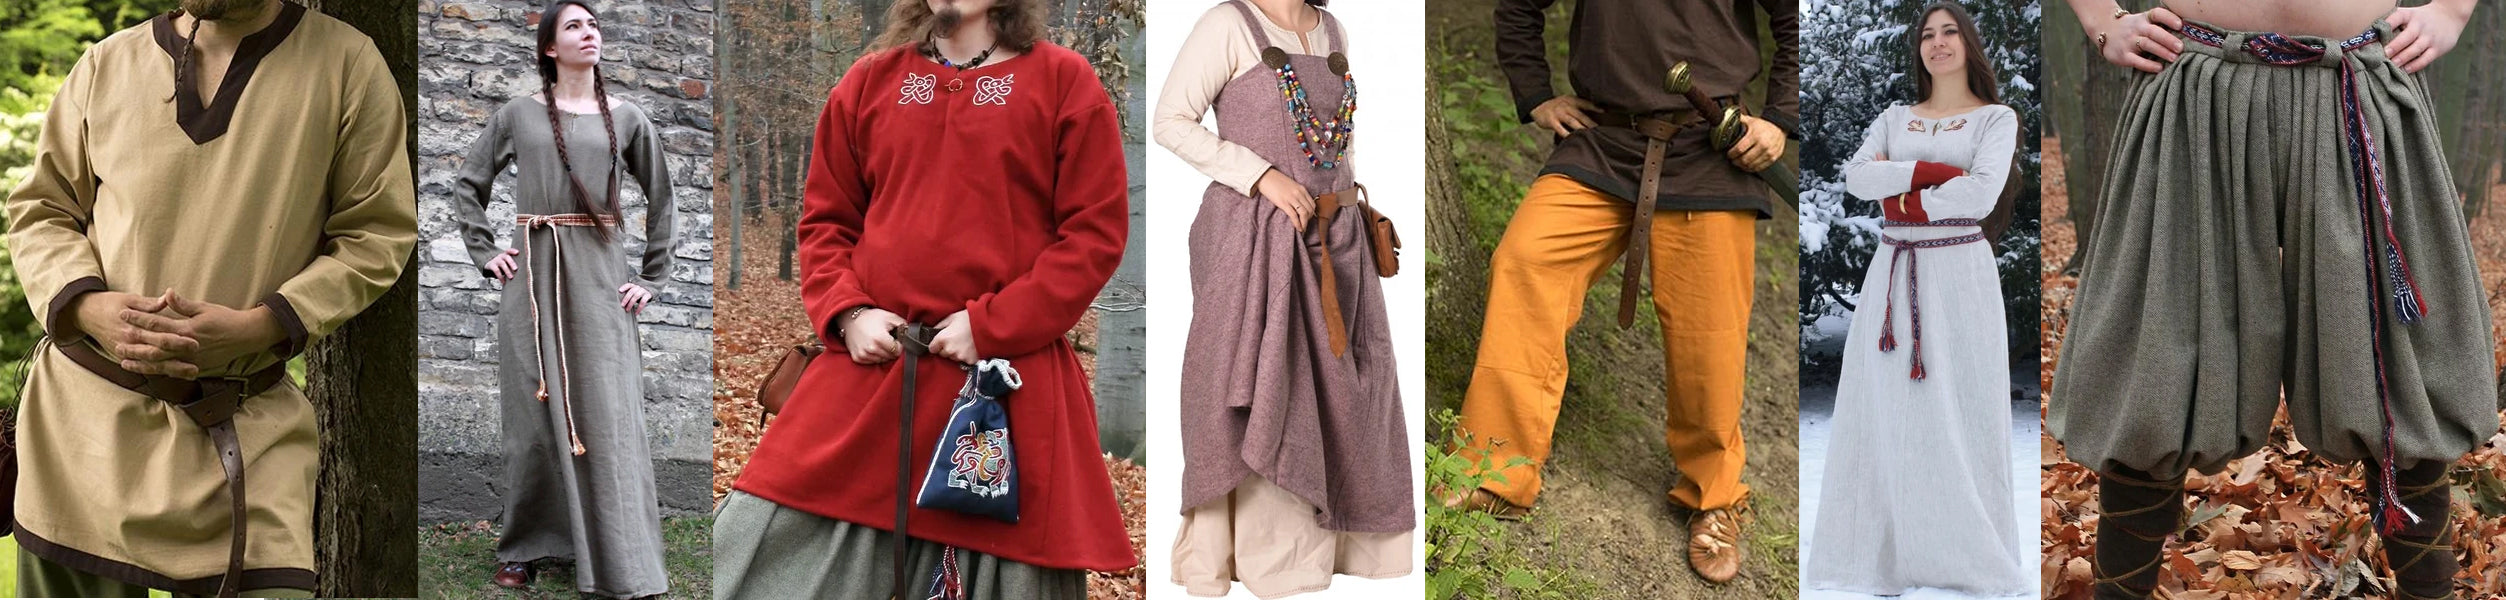 What Did Vikings Wear Viking Era Clothing Facts Historical Authentic Traditional History Sons Of Vikings